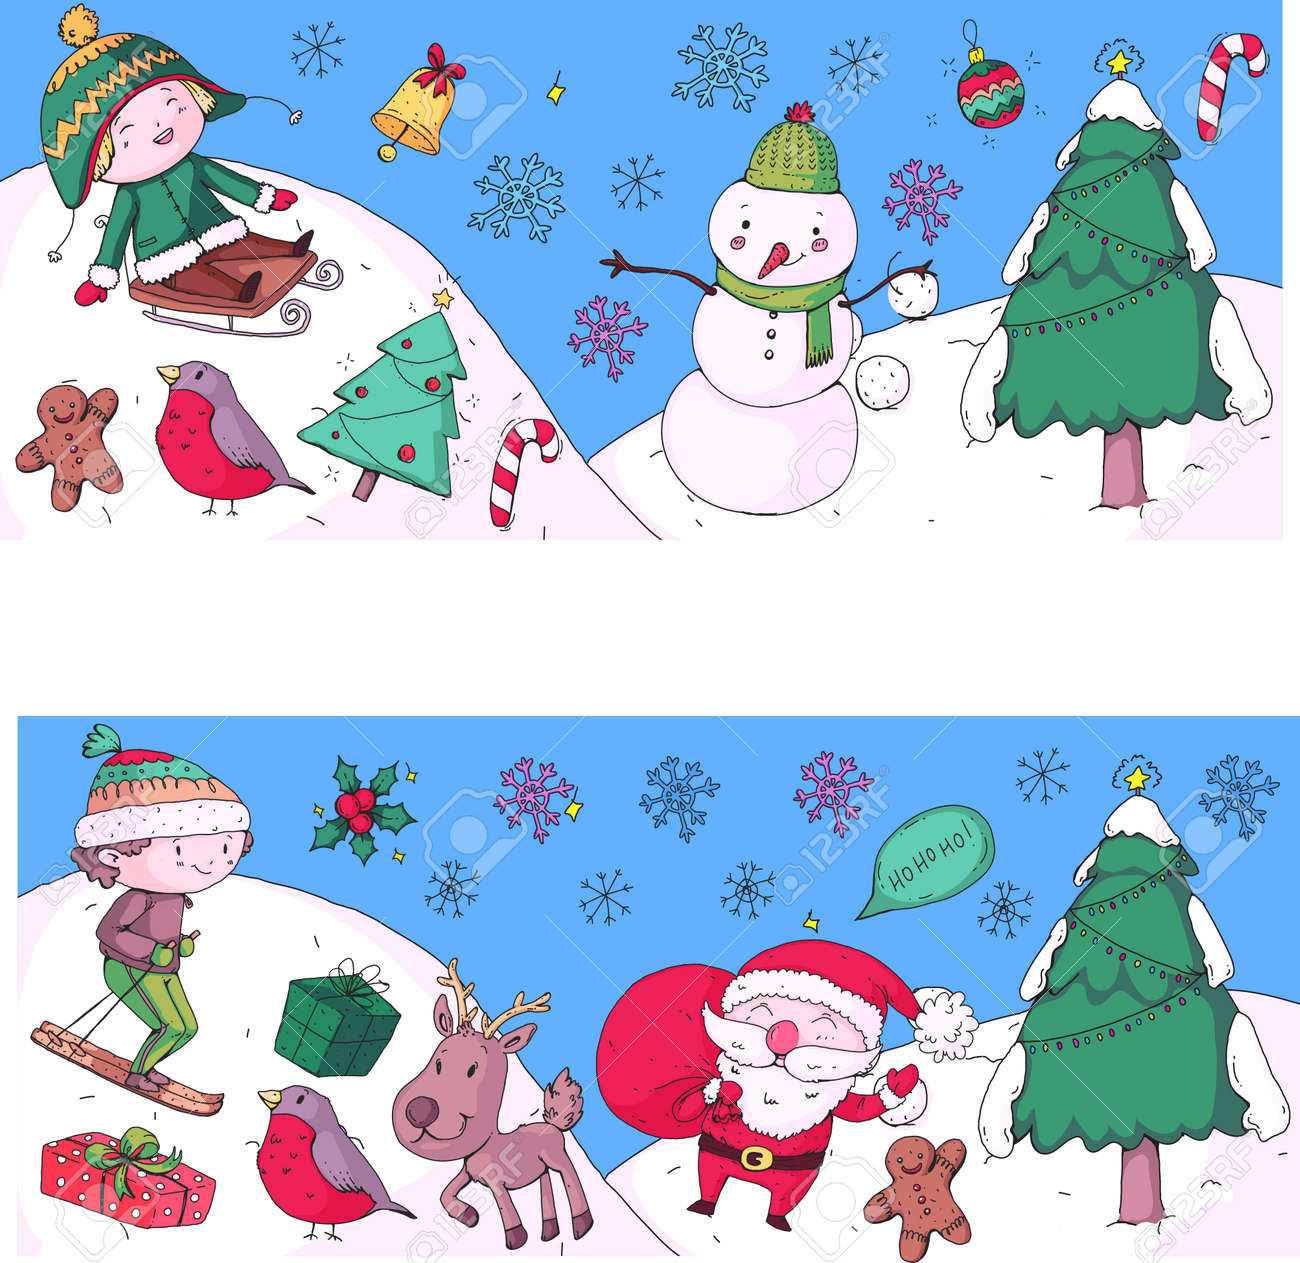 Christmas Images For Drawing.Merry Christmas Celebration With Children Kids Drawing Illustration